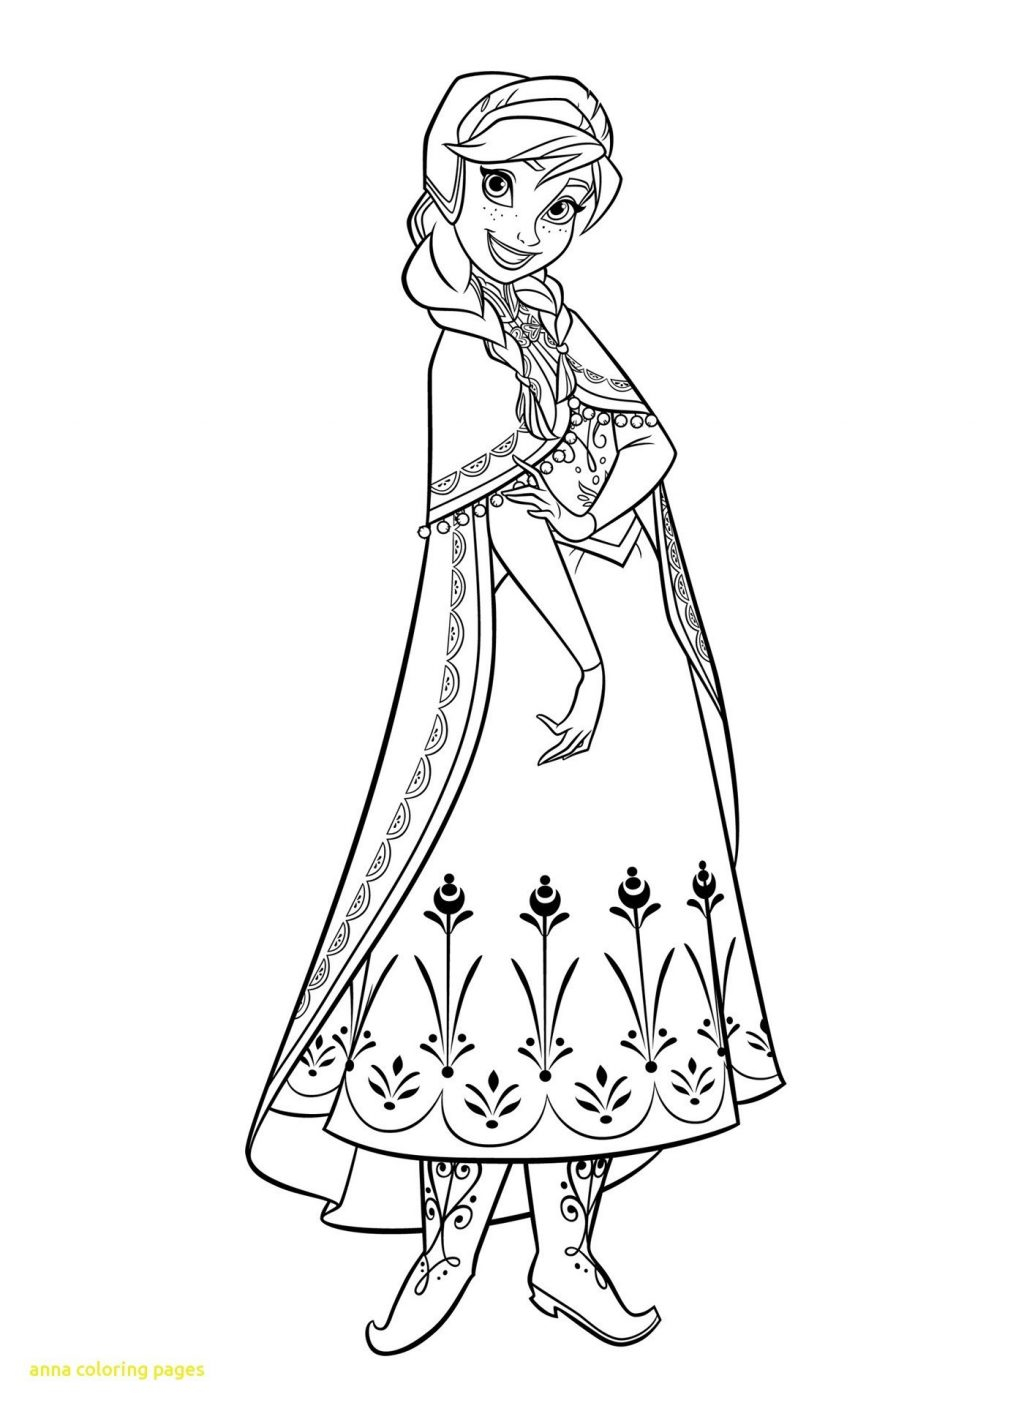 25+ Elegant Photo of Anna Coloring Pages